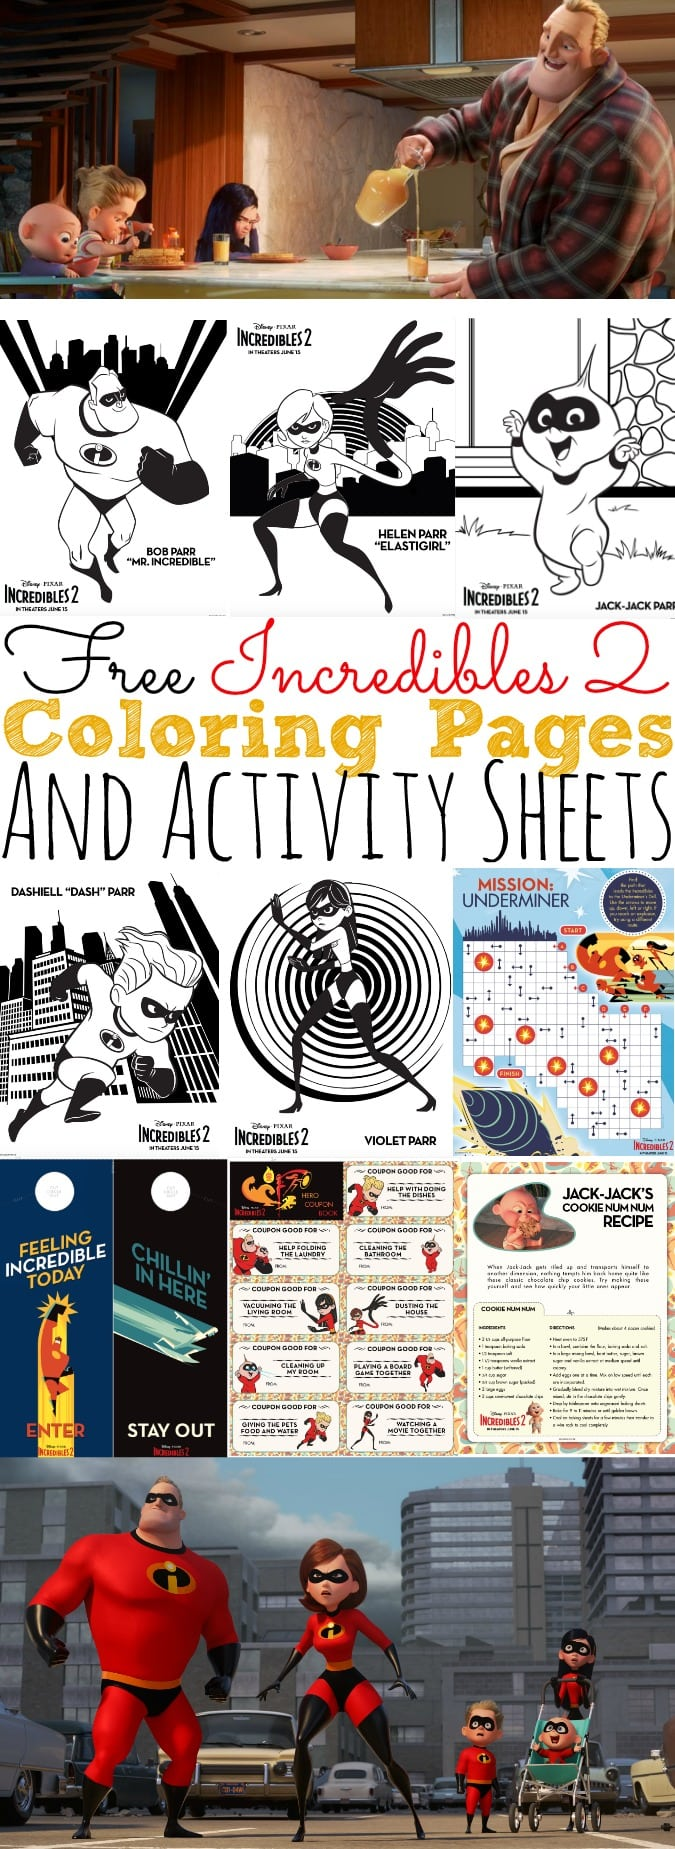 Free Incredibles 2 Coloring Pages and Activity Sheets